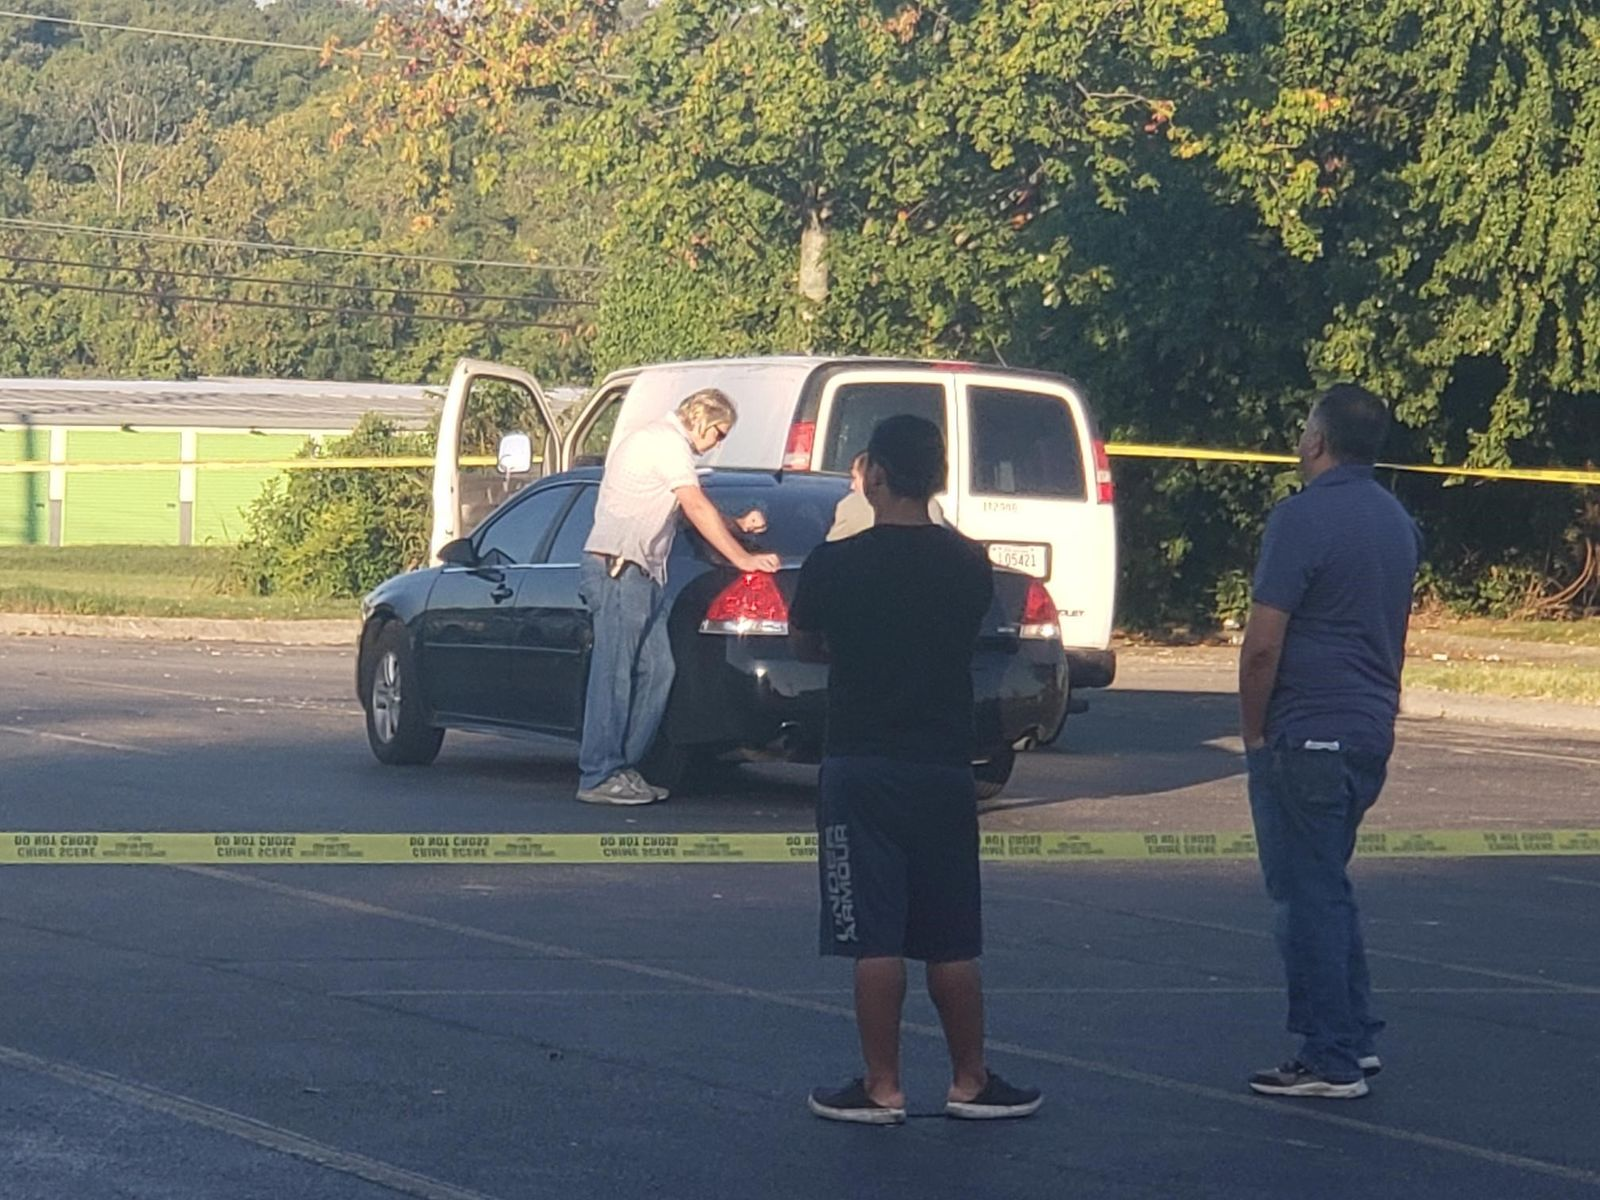 <p>Police said an ICE agent fired shots while trying to pull someone over Thursday morning near Nashville.(WZTV){&nbsp;}</p>